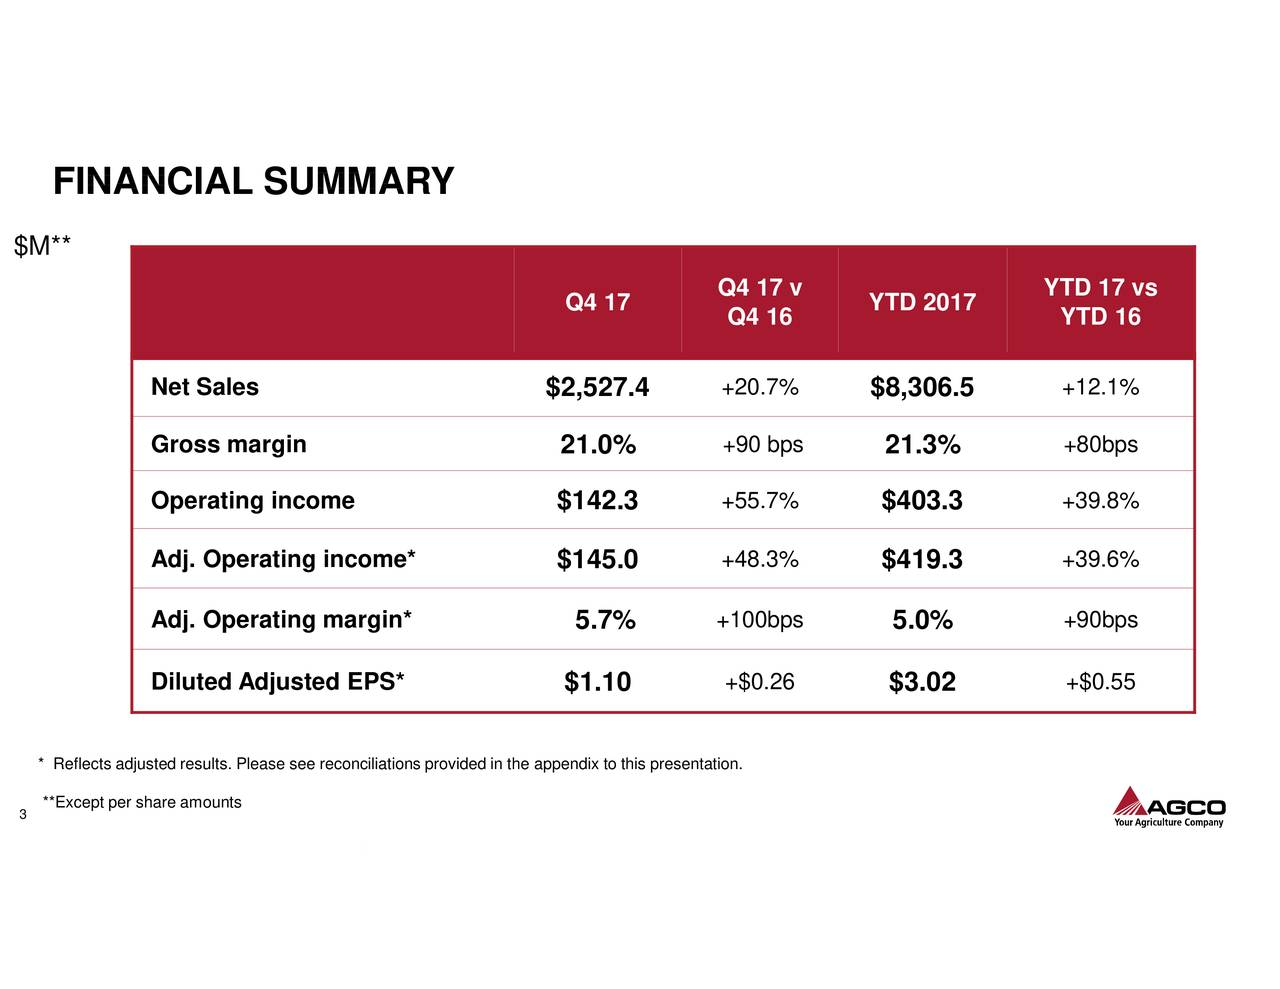 $M** Q4 17 Q4 17 v YTD 2017 YTD 17 vs Q4 16 YTD 16 Net Sales $2,527.4 +20.7% $8,306.5 +12.1% Gross margin 21.0% +90 bps 21.3% +80bps Operating income $142.3 +55.7% $403.3 +39.8% Adj. Operating income* $145.0 +48.3% $419.3 +39.6% Adj. Operating margin* 5.7% +100bps 5.0% +90bps Diluted Adjusted EPS* $1.10 +$0.26 $3.02 +$0.55 * Reflects adjusted results. Please see reconciliations provided in the appendix to this presentation. **Except per share amounts 3 3